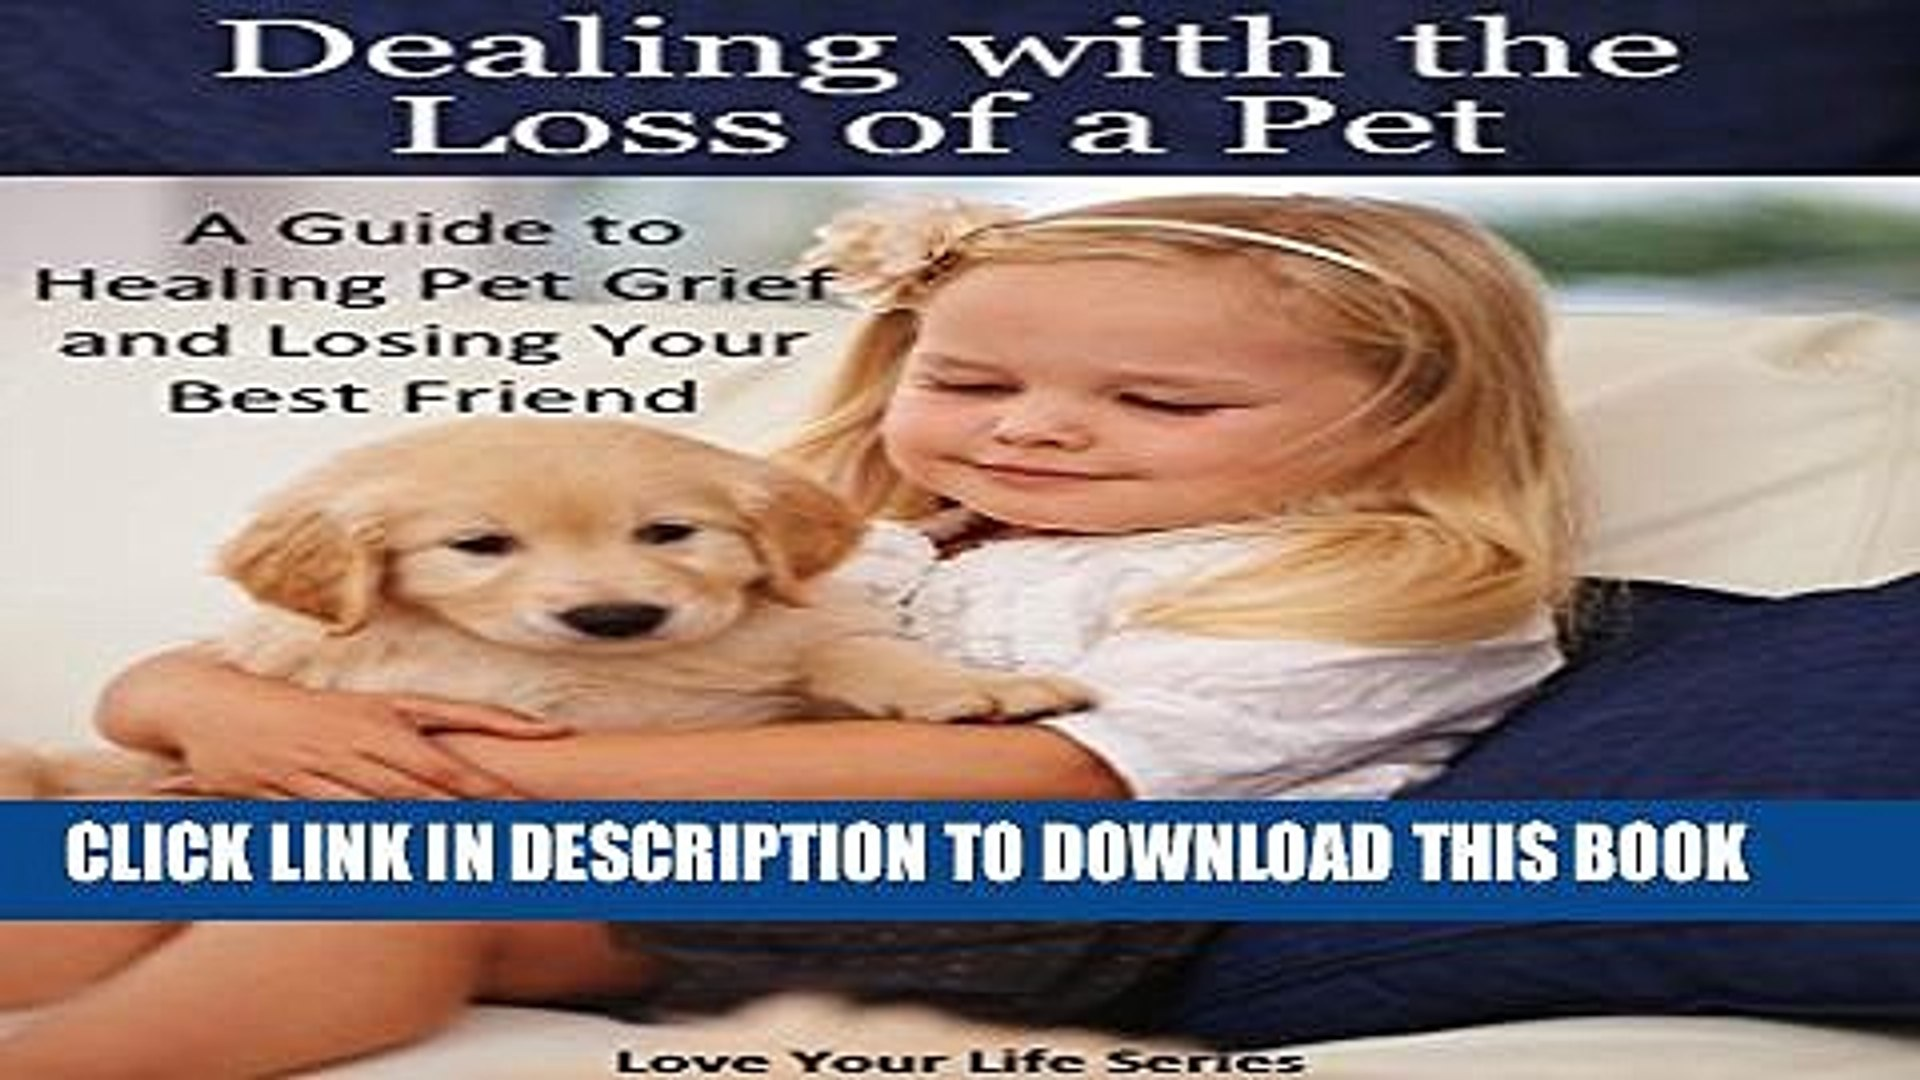 [PDF] Dealing with the Loss of a Pet: A Guide to Healing Pet Grief and Losing Your Best Friend